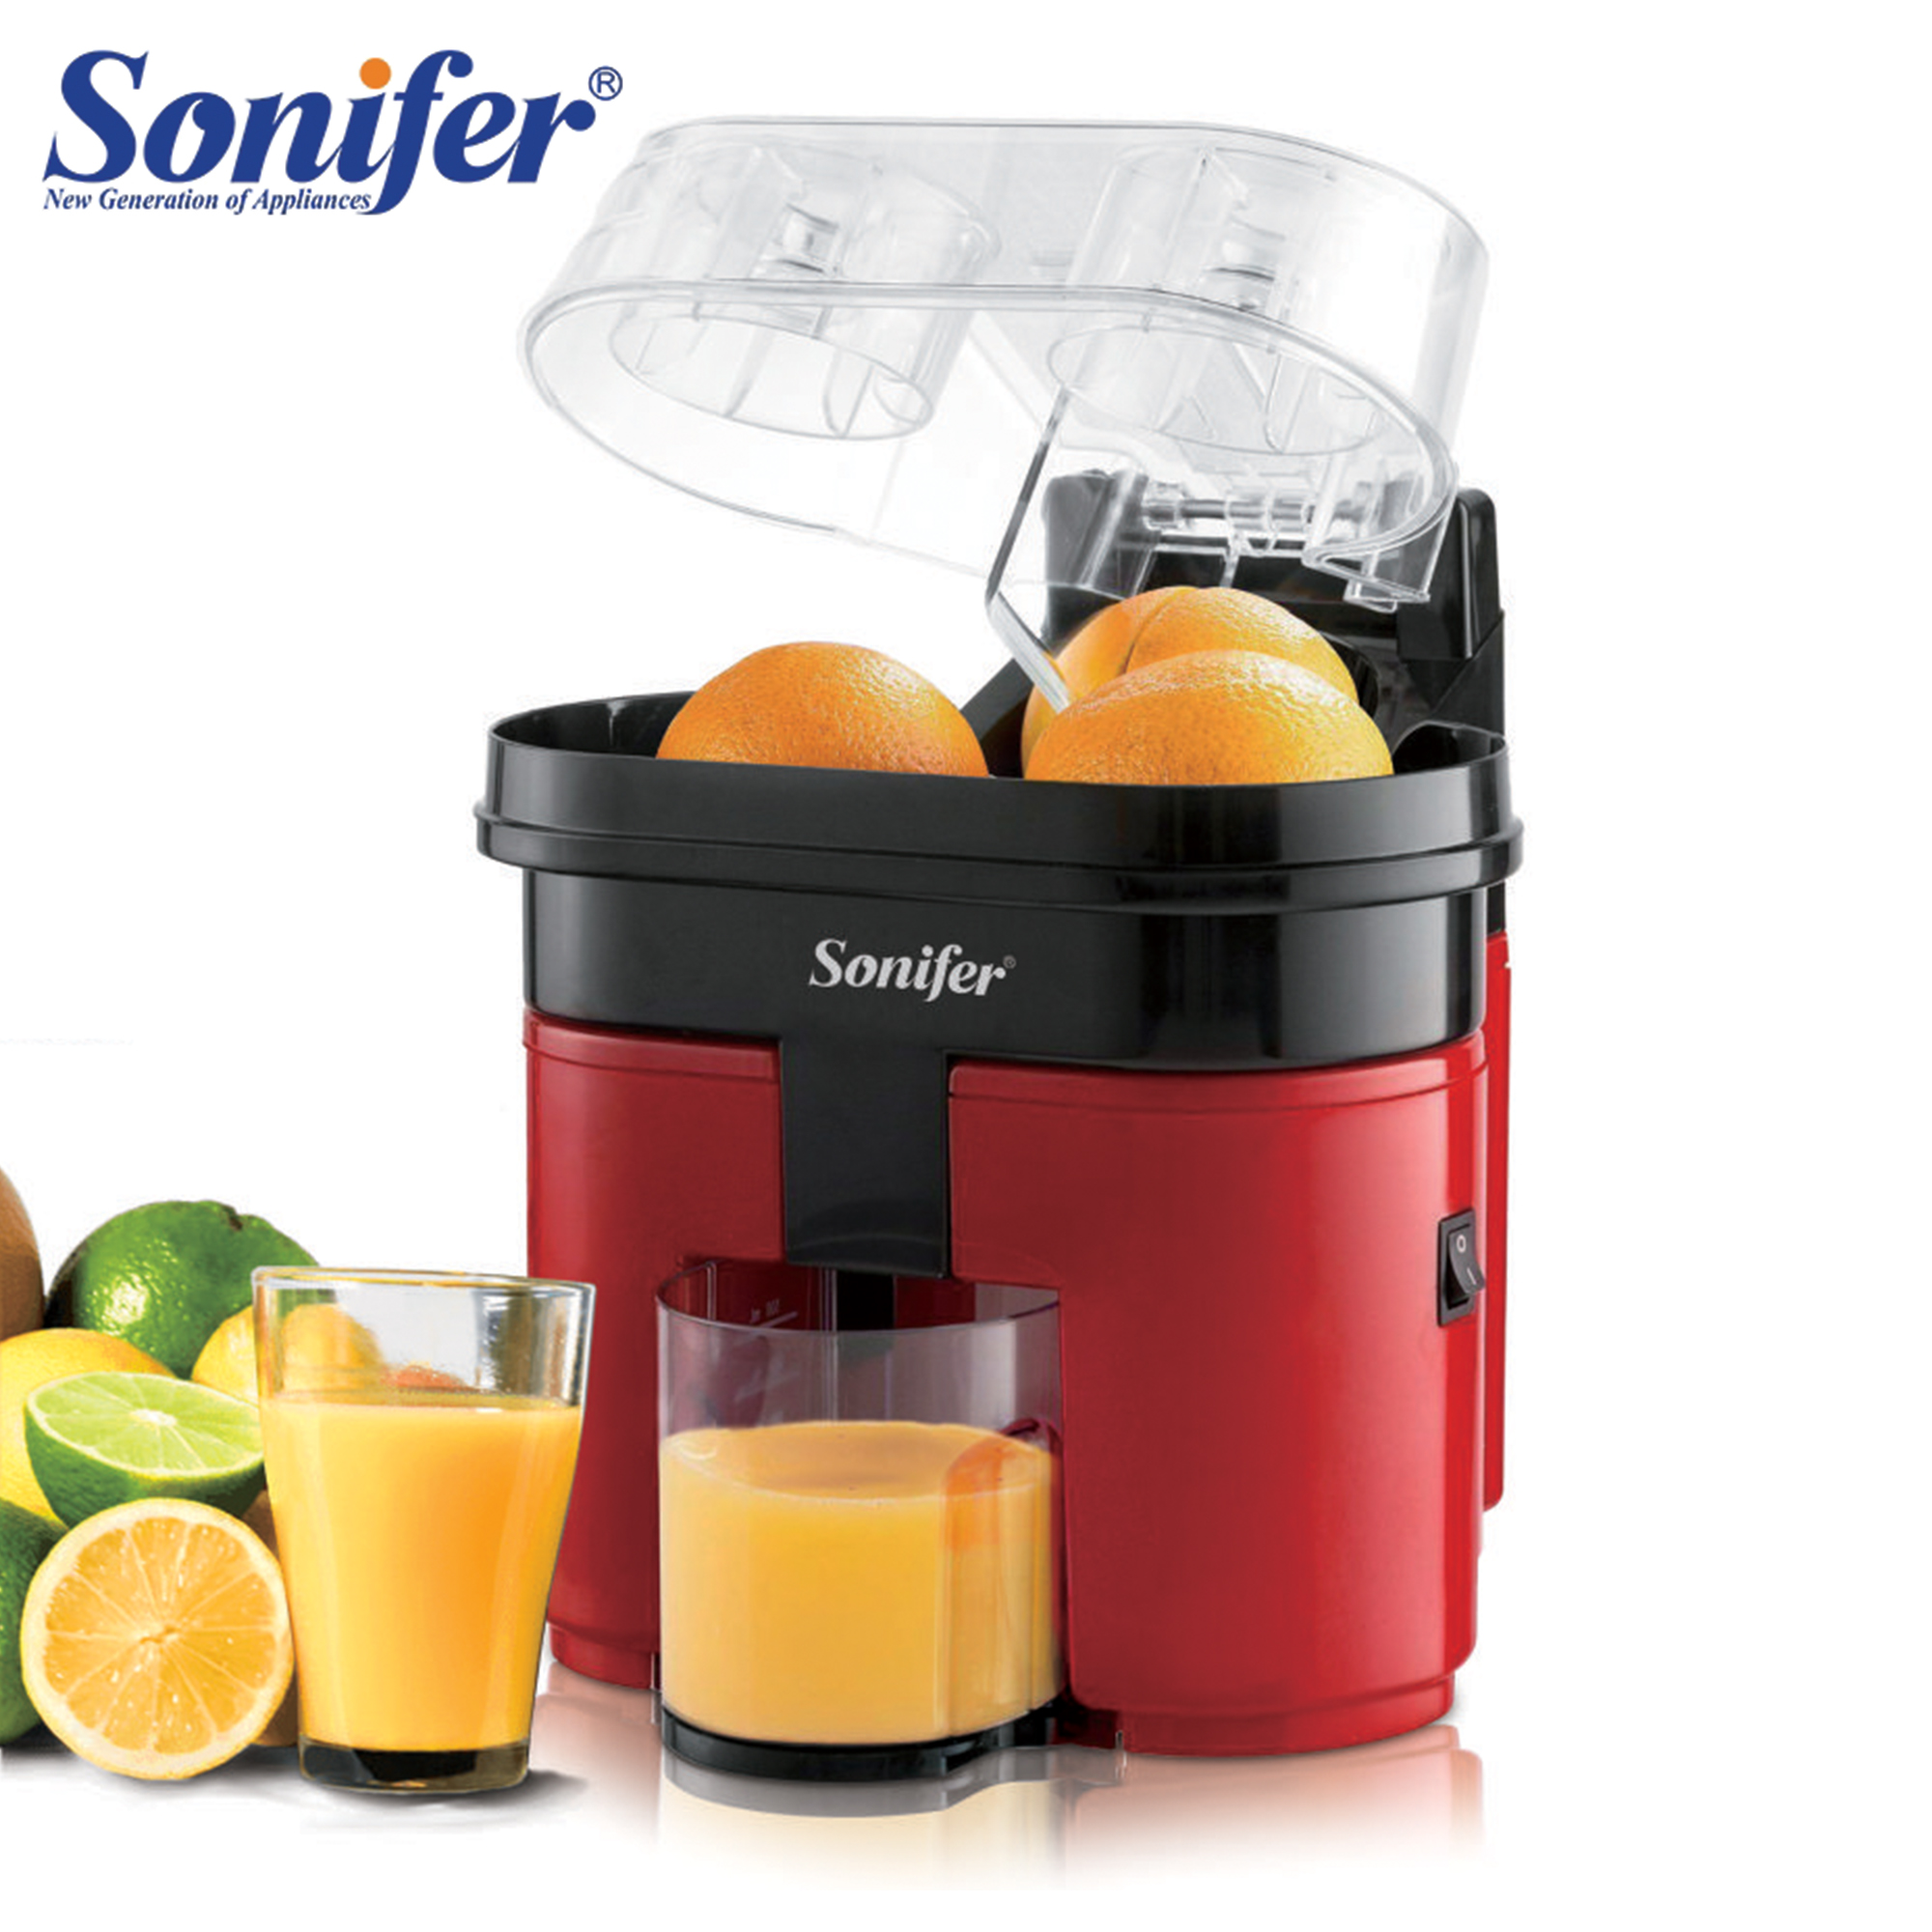 Fast Double Juicer 90W Electric Lemon Orange Fresh Juicer With Anti-drip Valve Citrus Fruits Squeezer Household 220V Sonifer